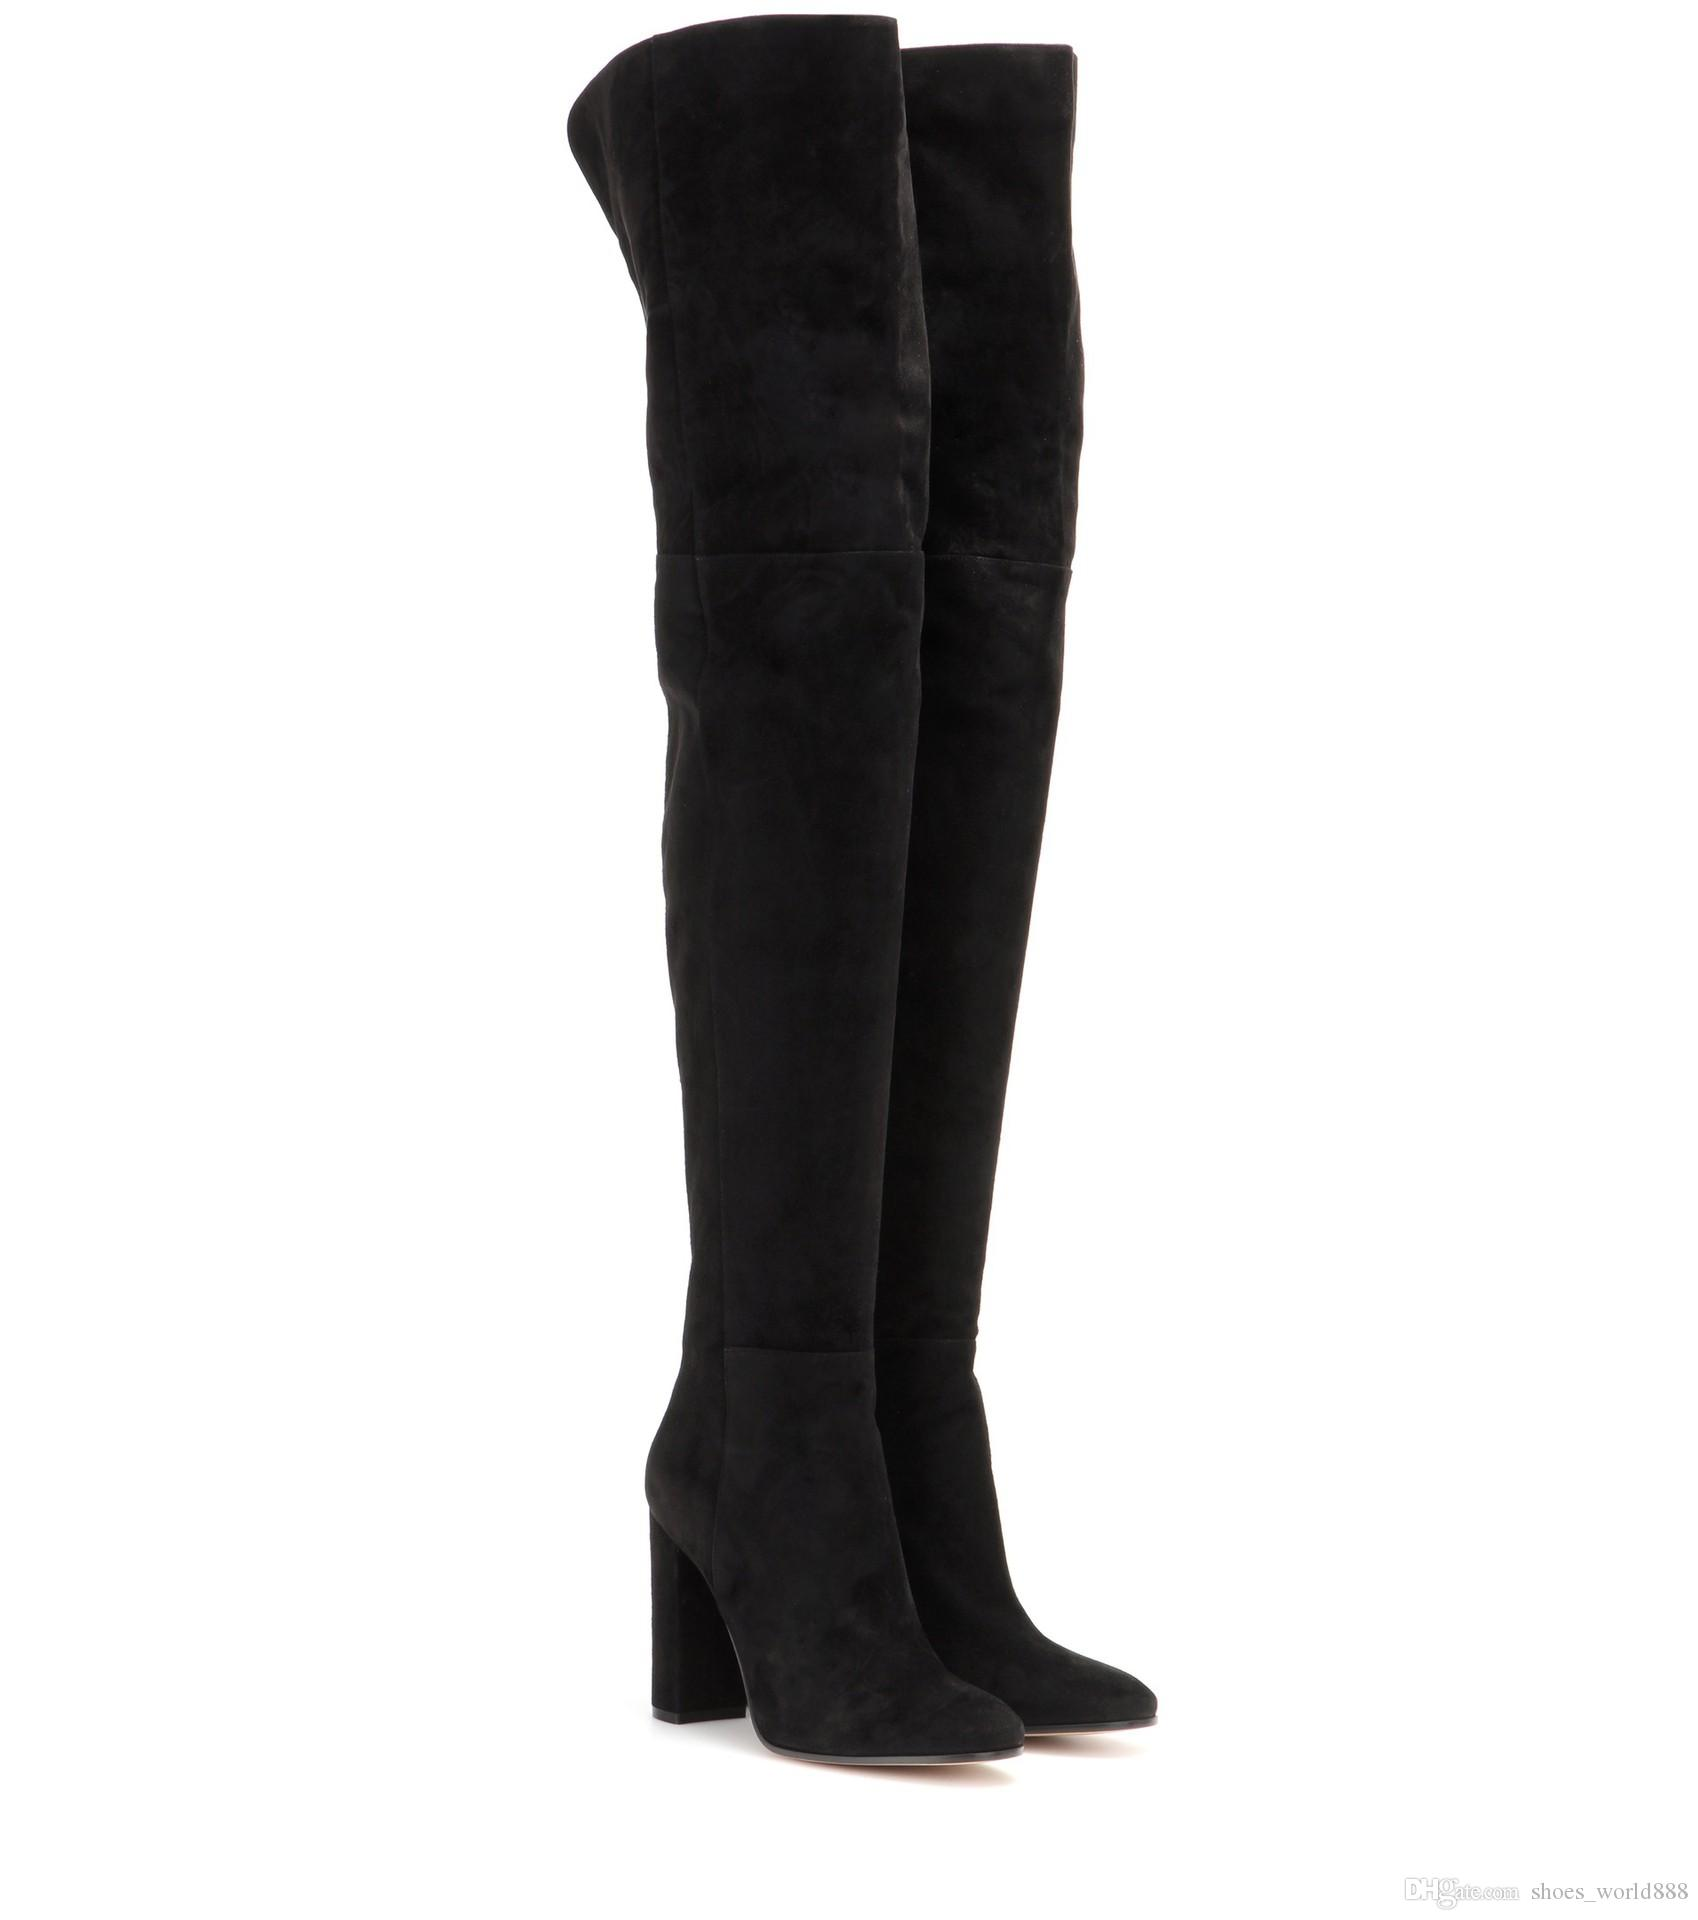 c3ff9cfe2 2019 Designer Womens Boots Black Velvet Suede Thigh-High Boots Fashion  Large Size Round Head High Heel Over Knee Boots